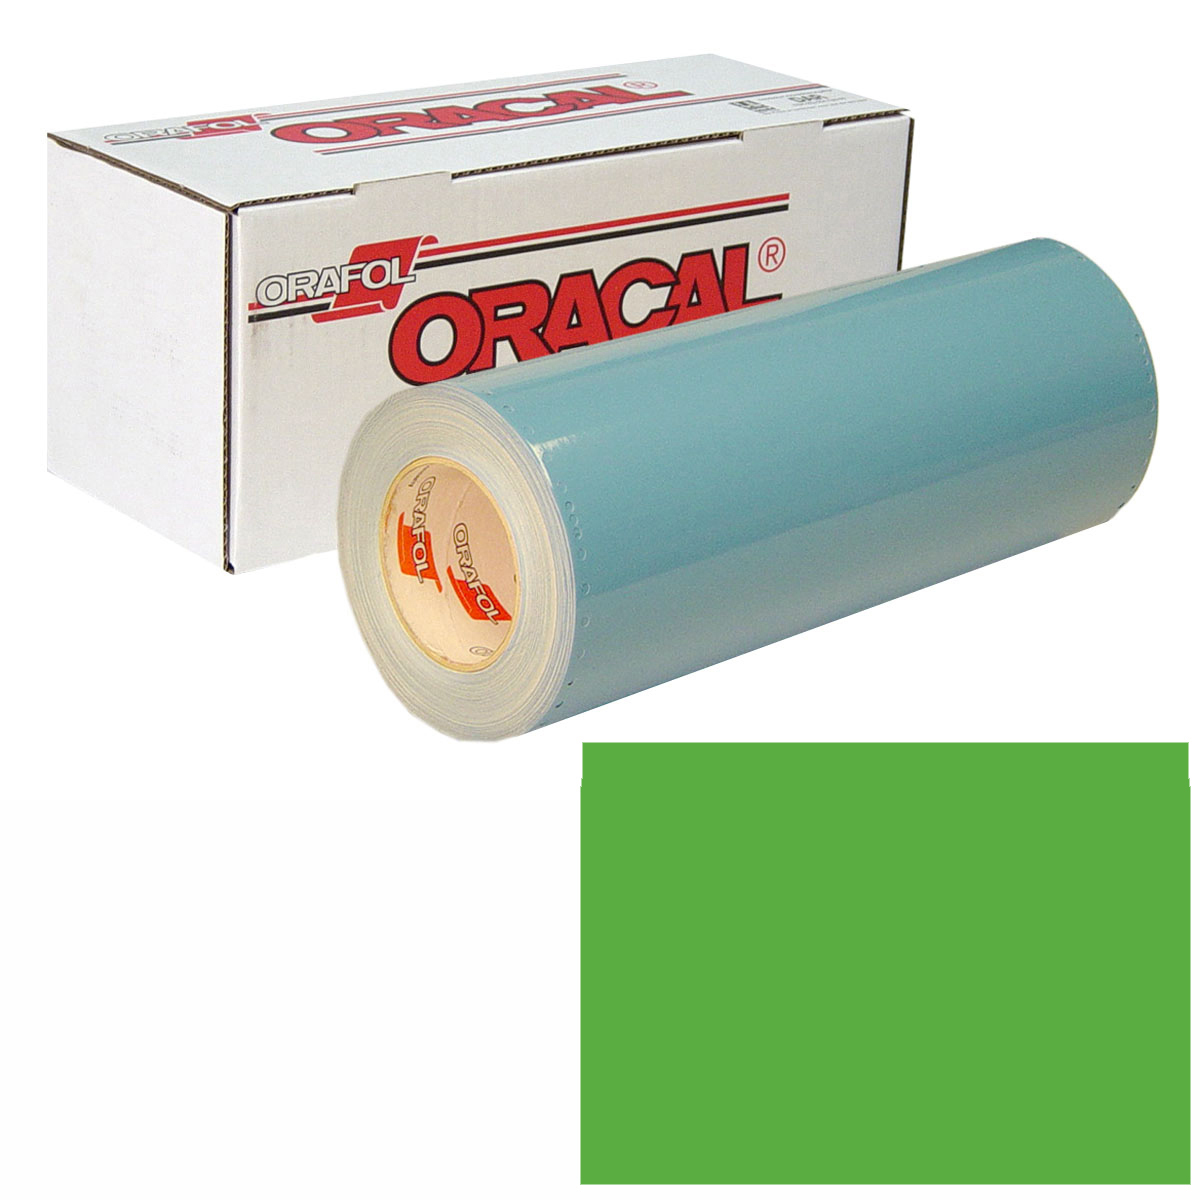 ORACAL 751 30In X 50Yd 063 Lime-Tree Green